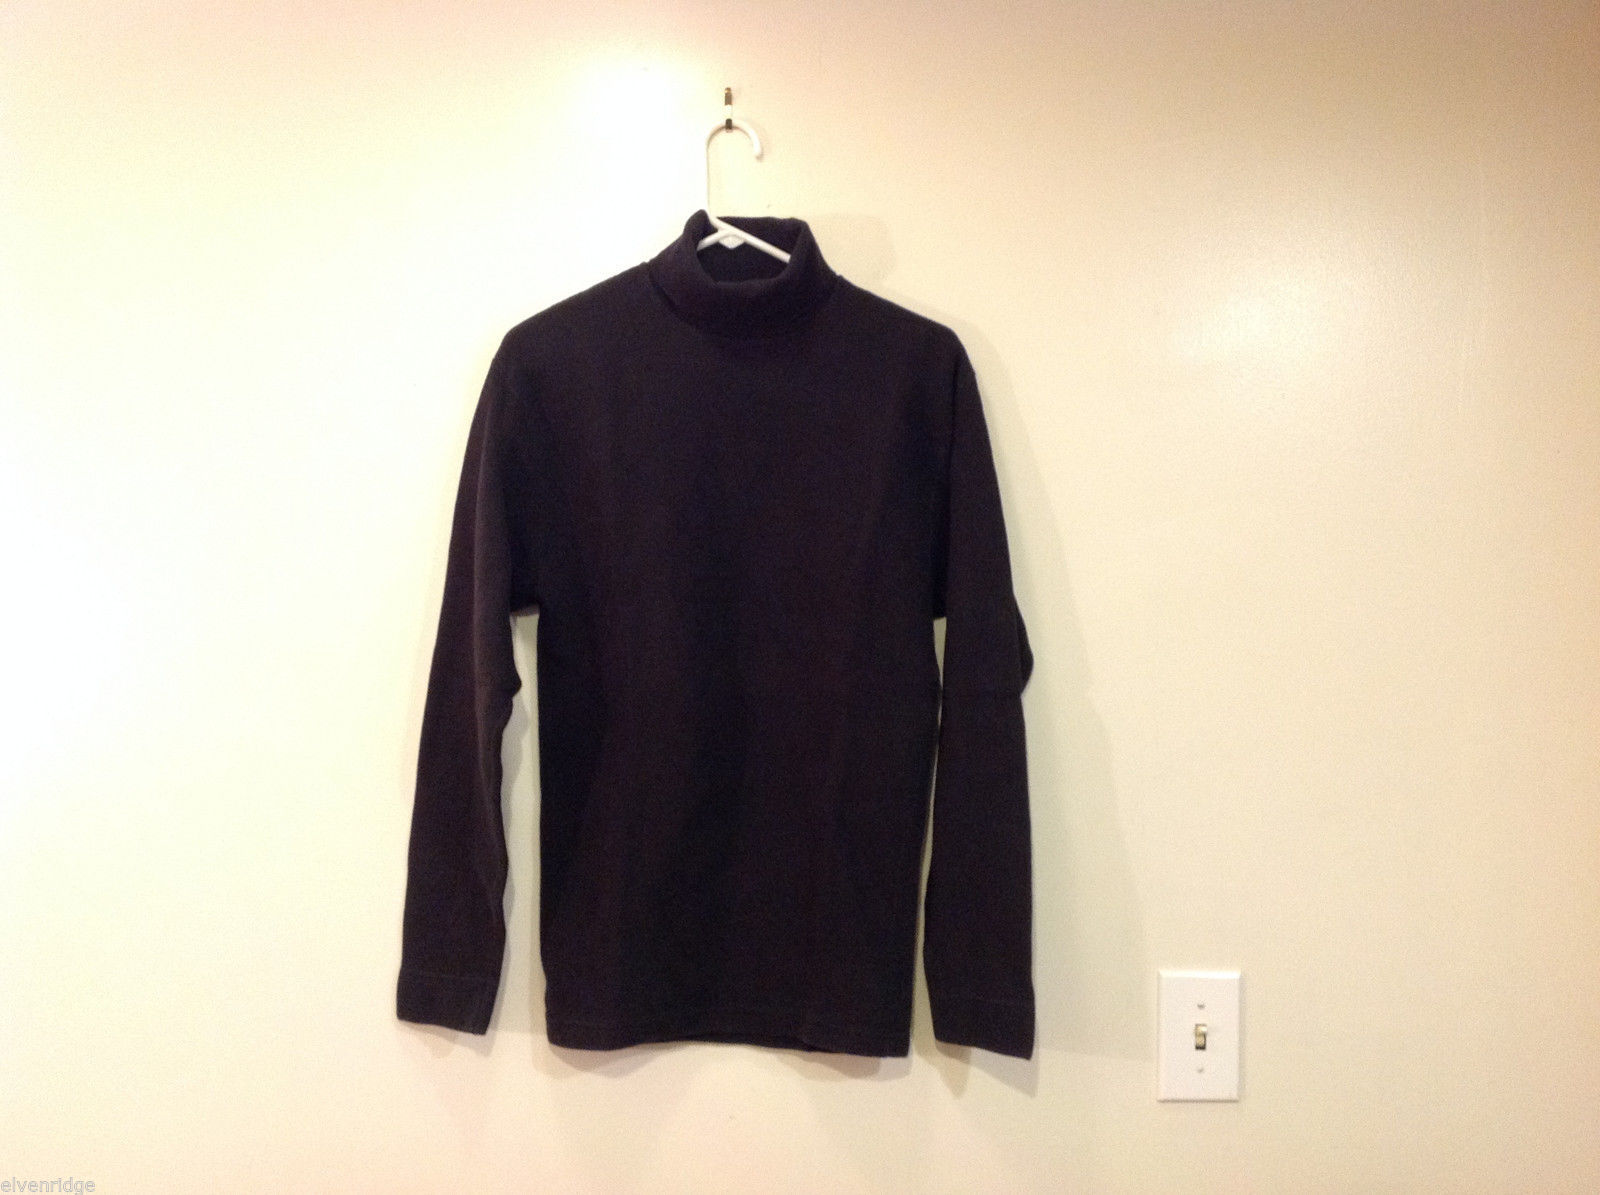 Design Studio Black 100% cotton Turtleneck Sweater, Size M